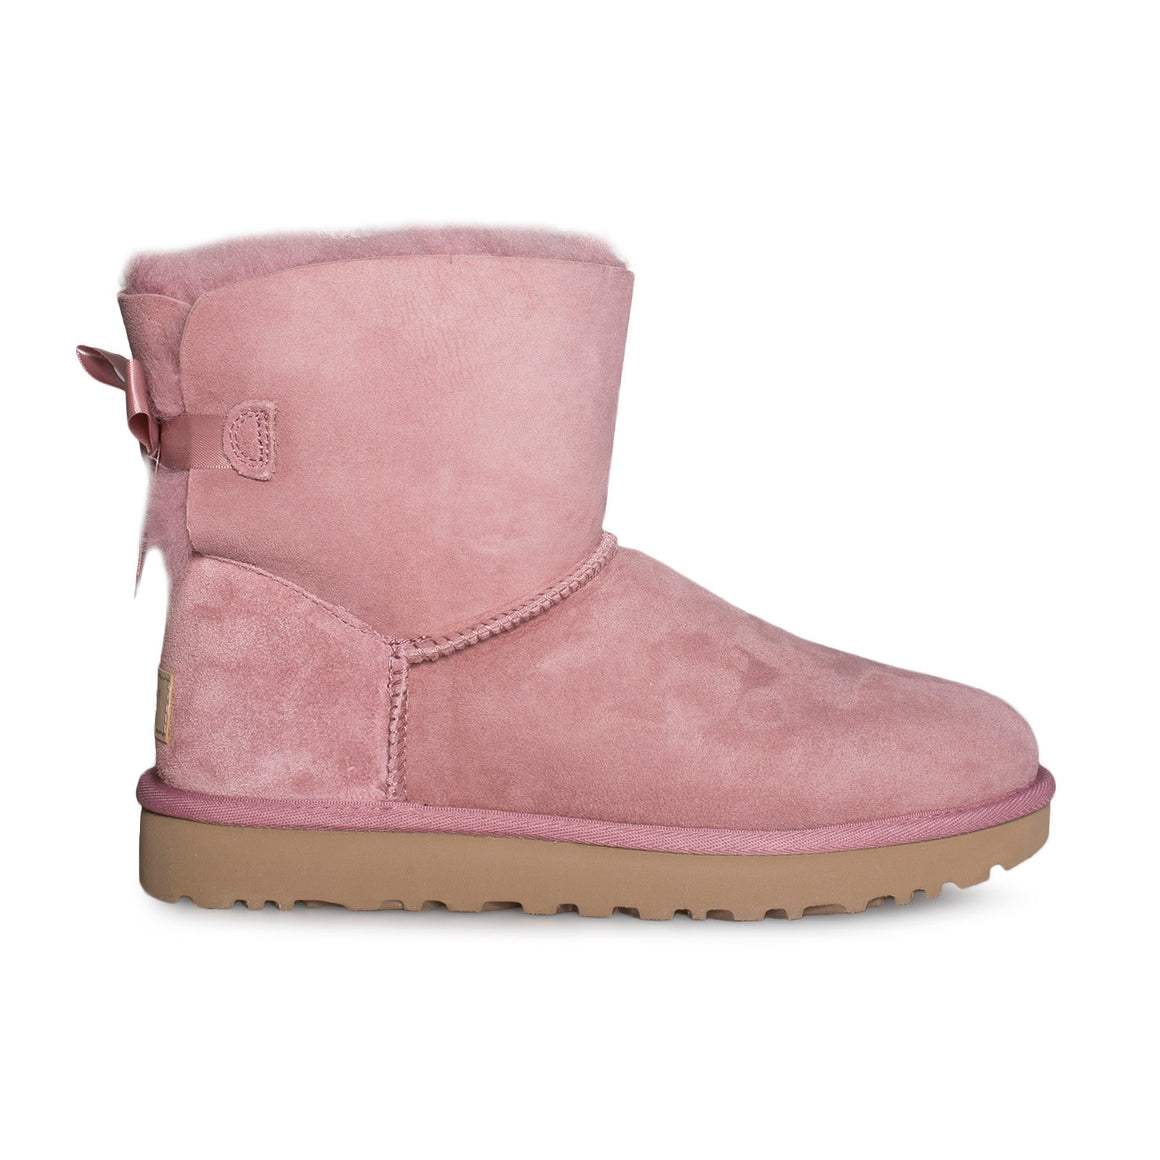 UGG Mini Bailey Bow II Pink Dawn Boots - Women's